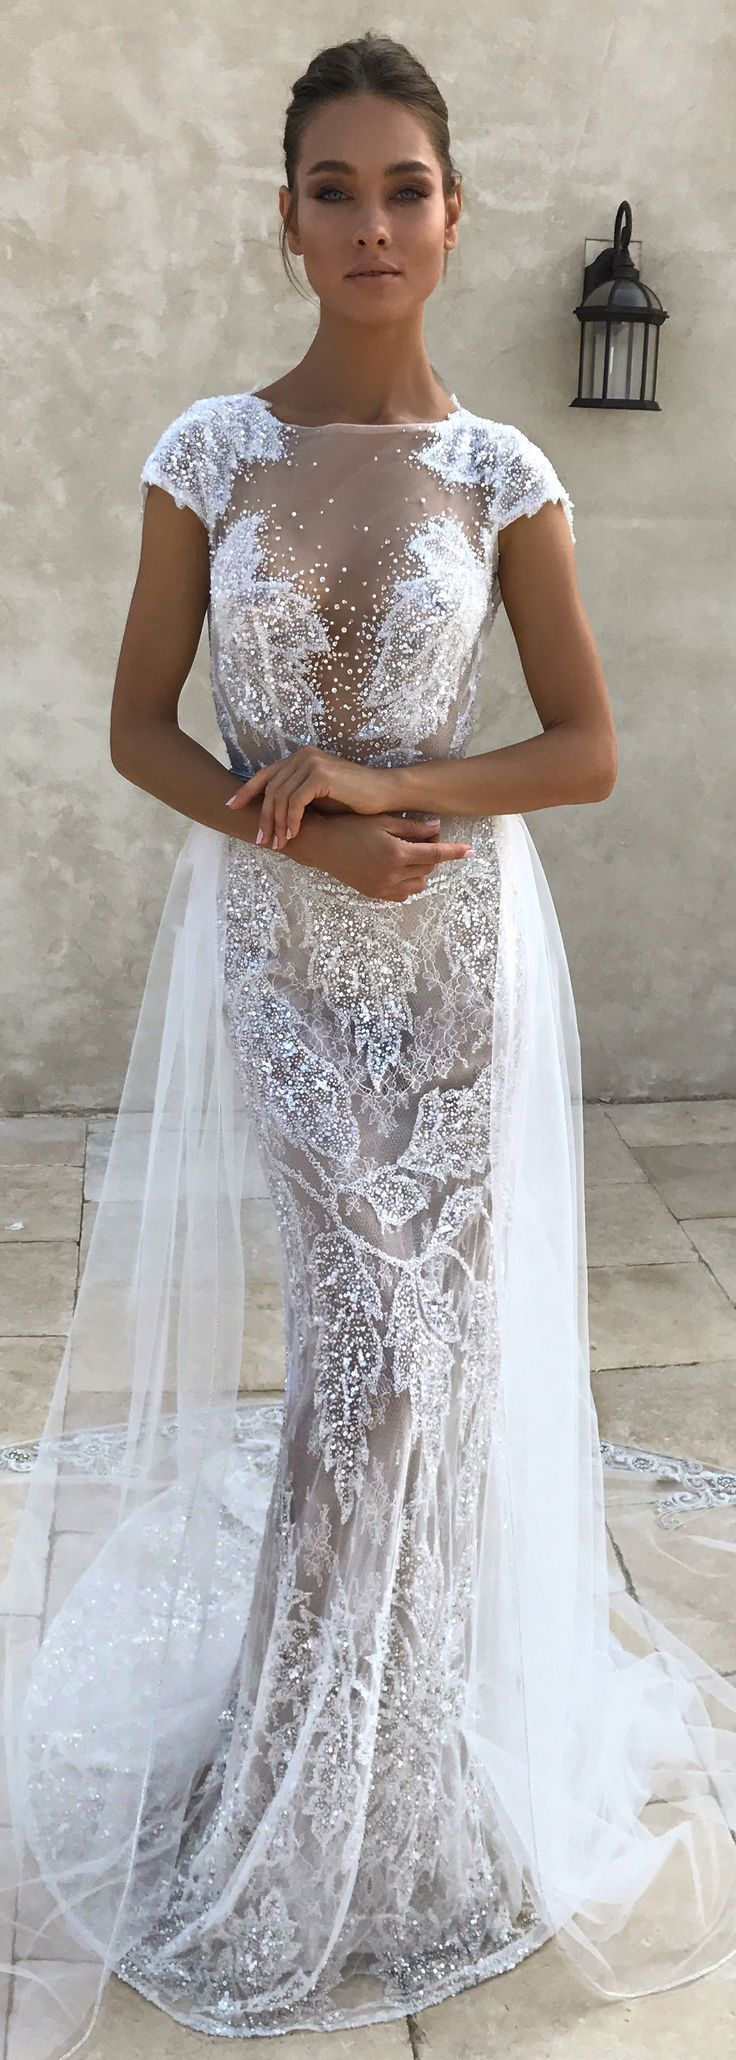 New BERTA bridal couture behind the scenes